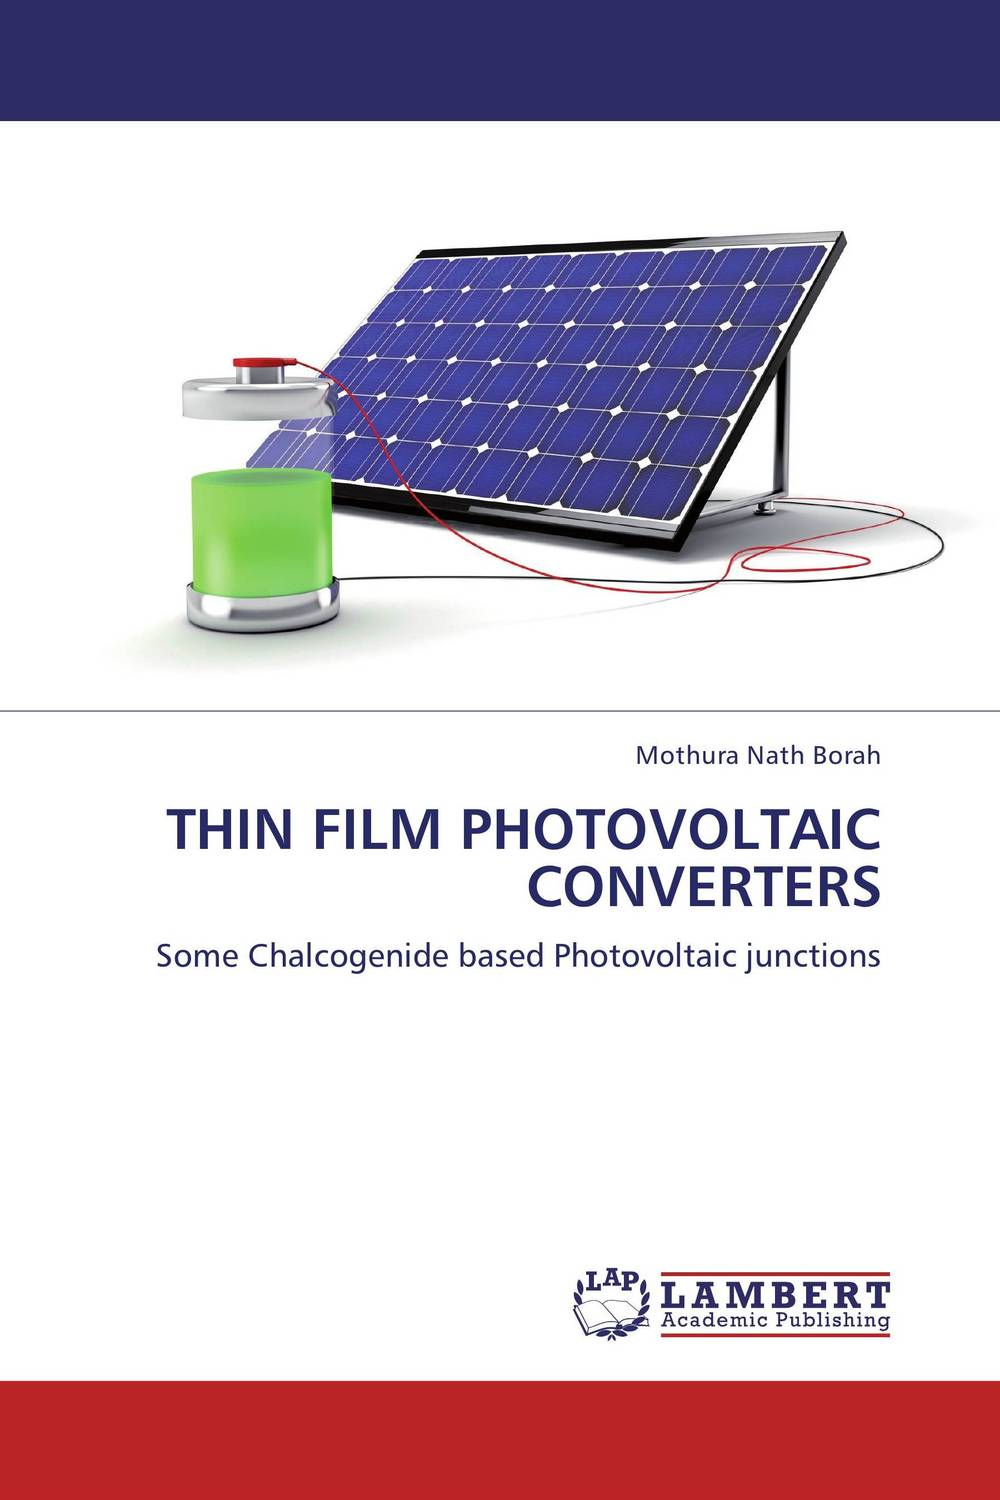 THIN FILM PHOTOVOLTAIC CONVERTERS study of point defects in solids and thin films